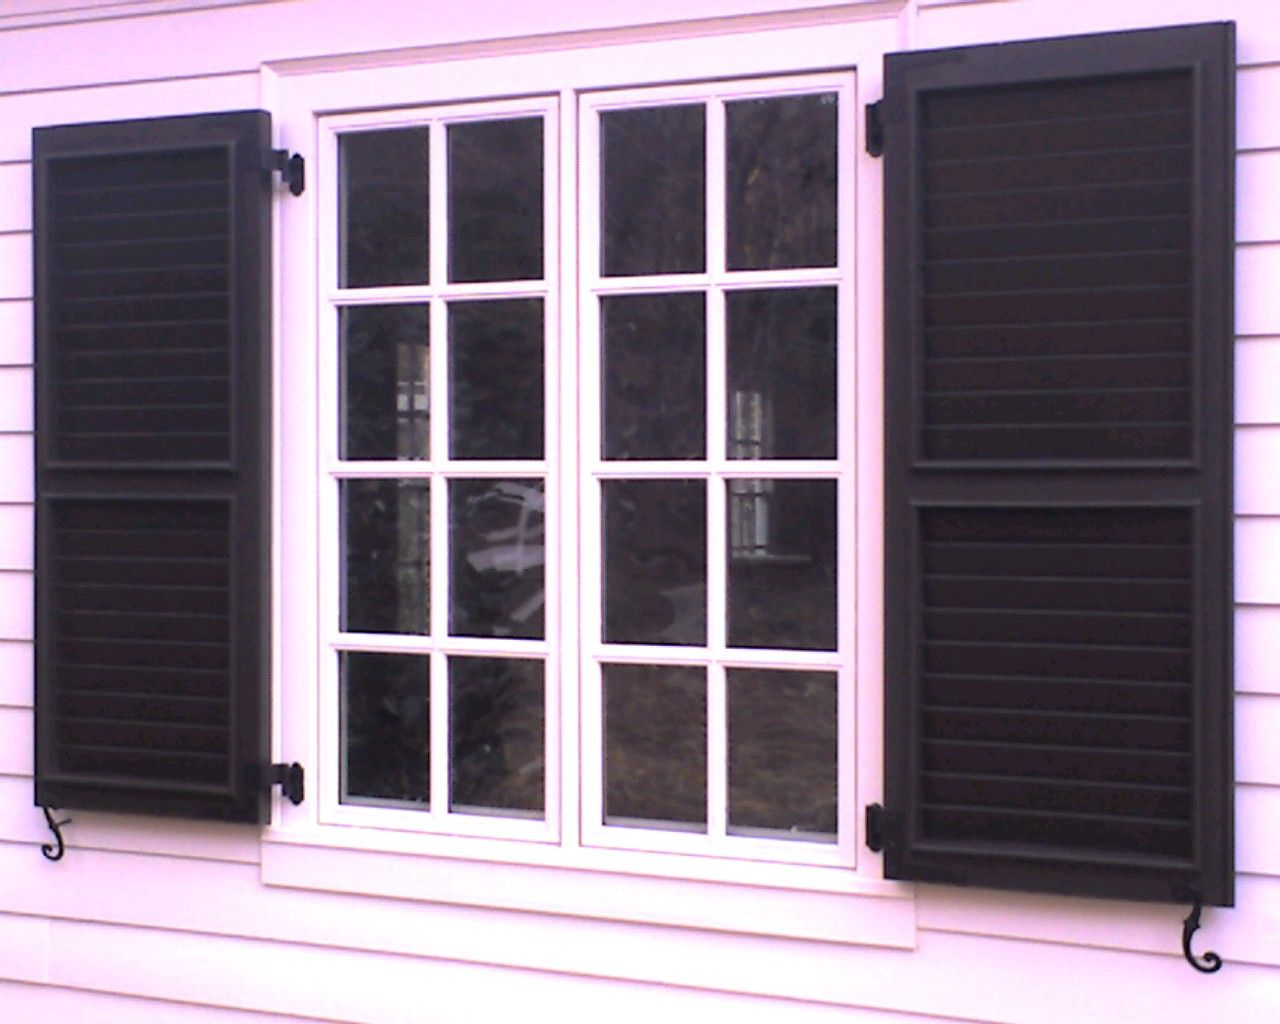 Exterior windows with shutters - Operational Window Shutters Exterior